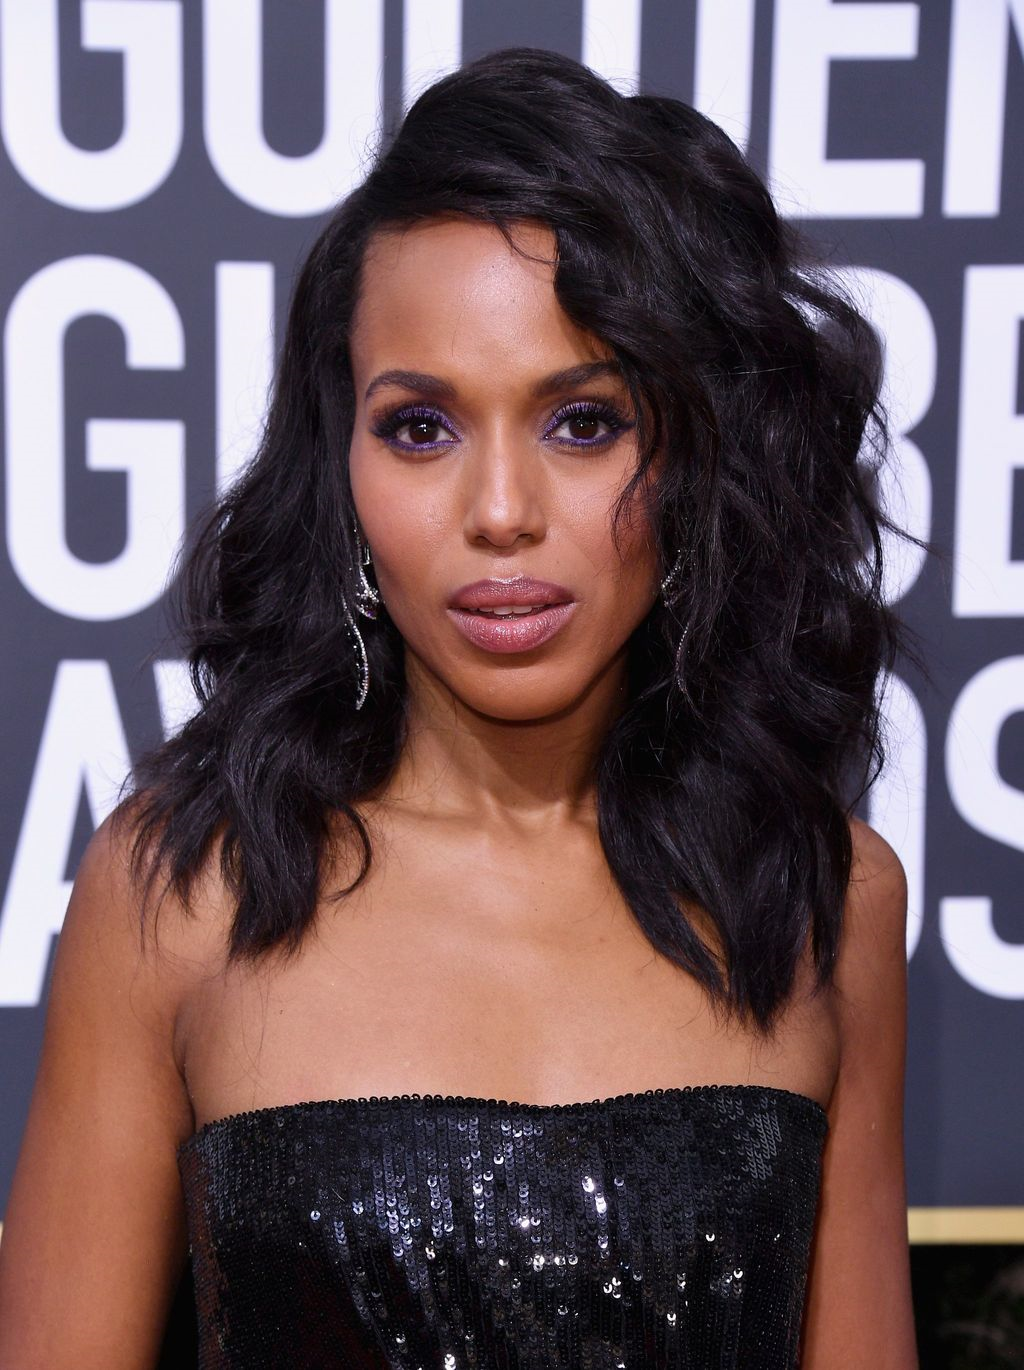 Pictures Kerry Washington nudes (74 photo), Topless, Leaked, Instagram, butt 2006